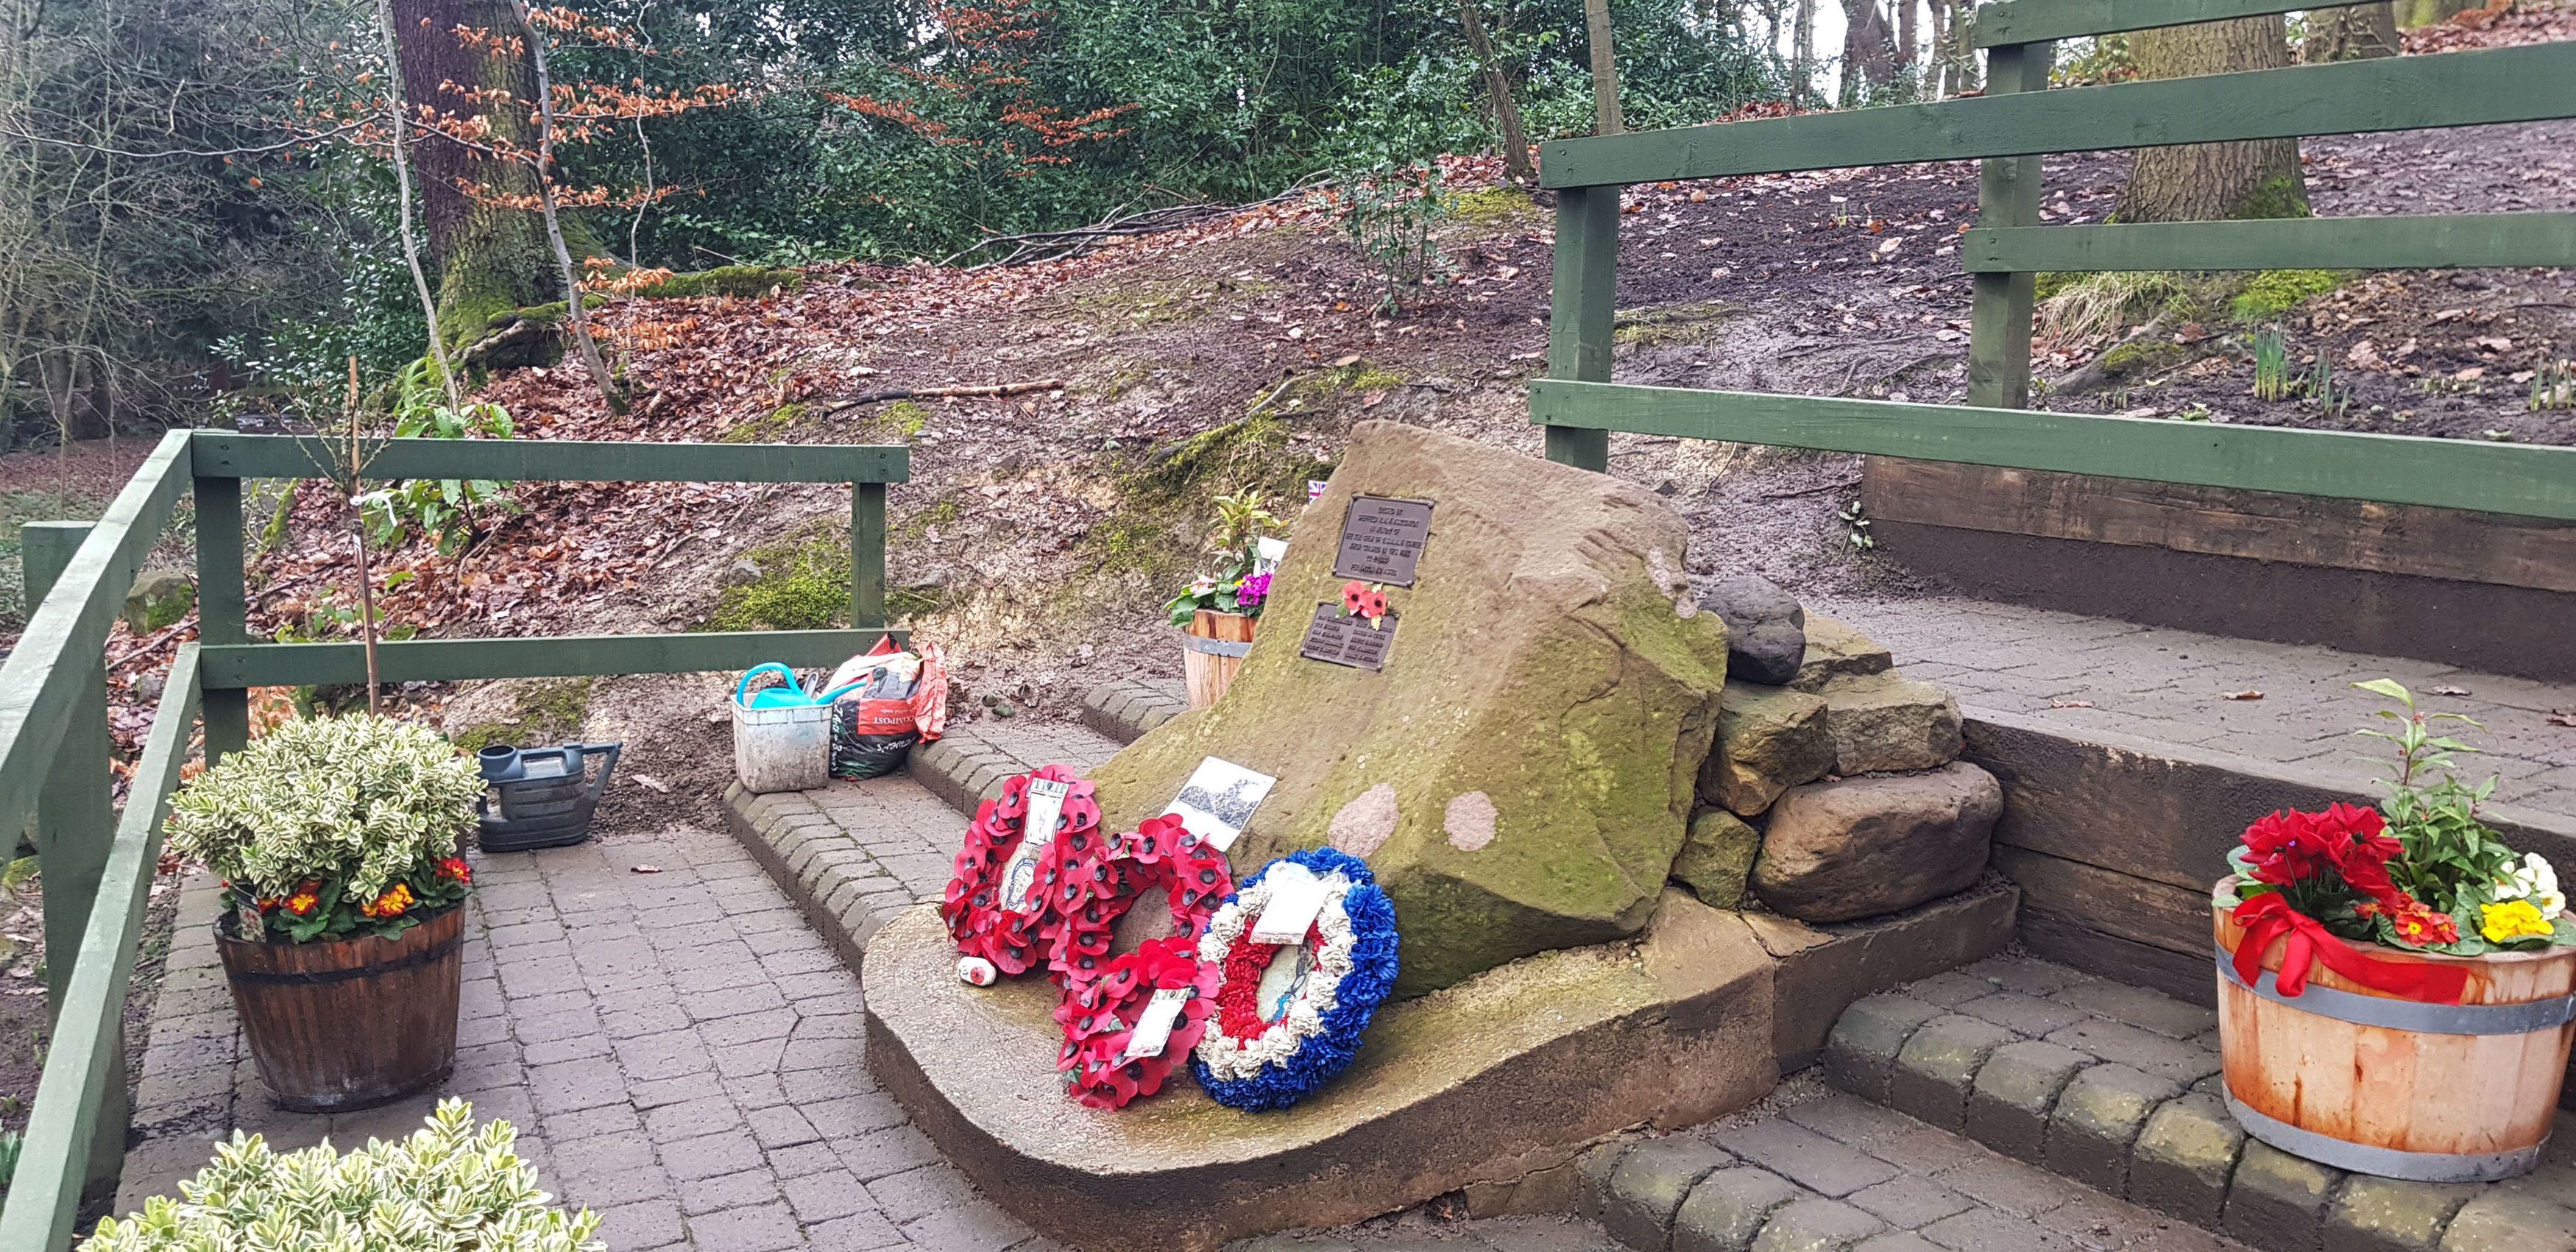 A memorial to 10 WW2 airmen in Endcliffe Park, Sheffield which is looked after by 82-year-old Tony Foulds, who was told there will be a flypast to honour their memory - after a social media campaign by BBC Breakfast's Dan Walker. PRESS ASSOCIATION Photo. Picture date: Tuesday January 22, 2019. Mr Foulds was just eight when he witnessed the B-17 Flying Fortress, the American plane which was carrying the men, crash in the park on February 22 1944, killing all 10 of them. See PA story MEMORIAL Flypast. Photo credit should read: Dave Higgens/PA Wire